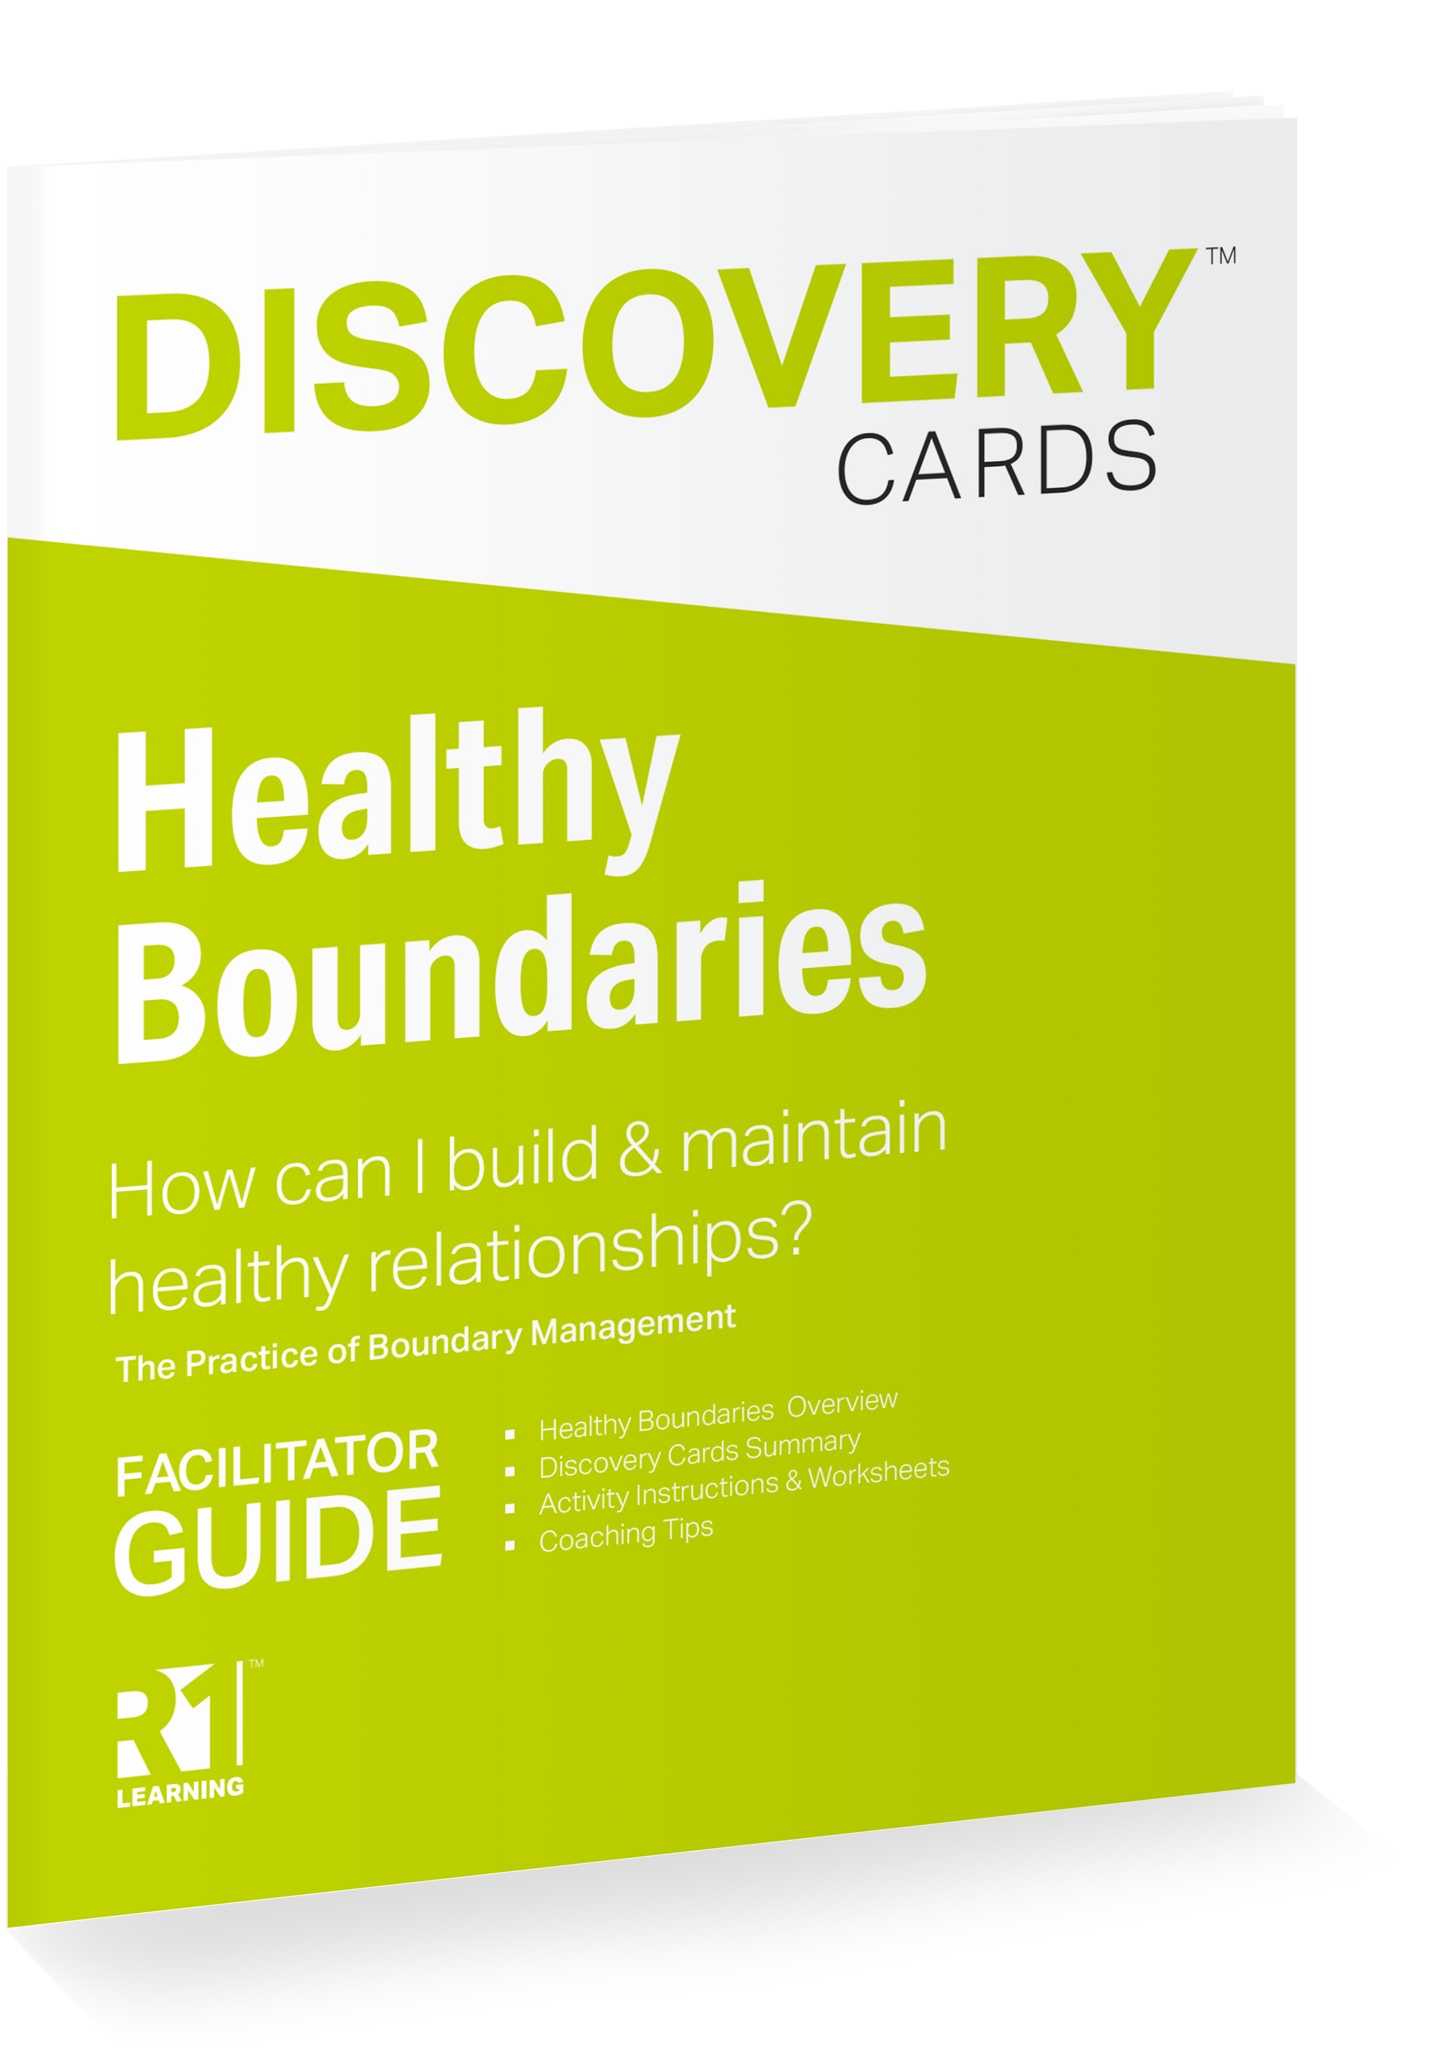 3-healthyboundaries-guide.jpg